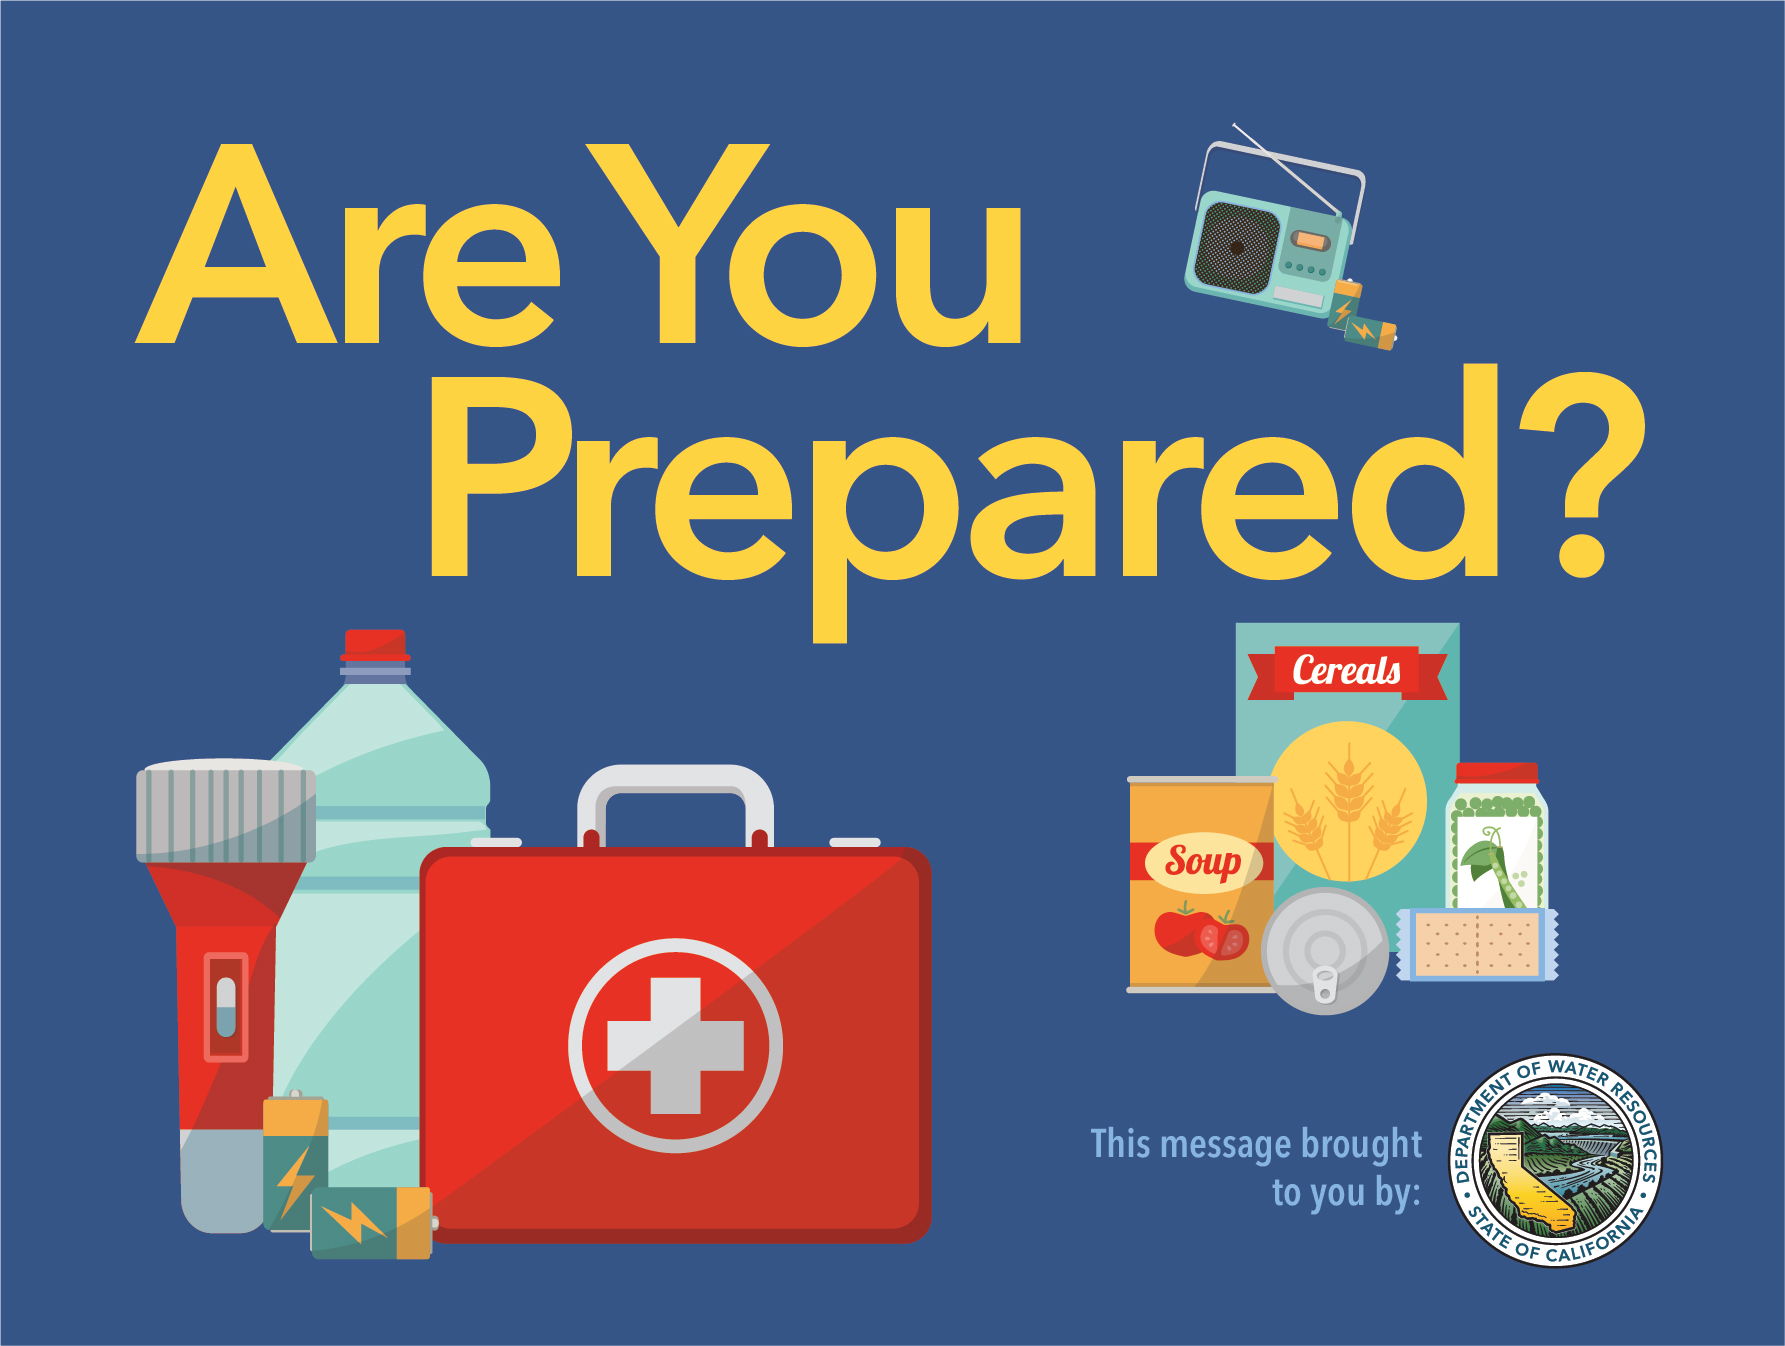 Are you prepared?' graphic